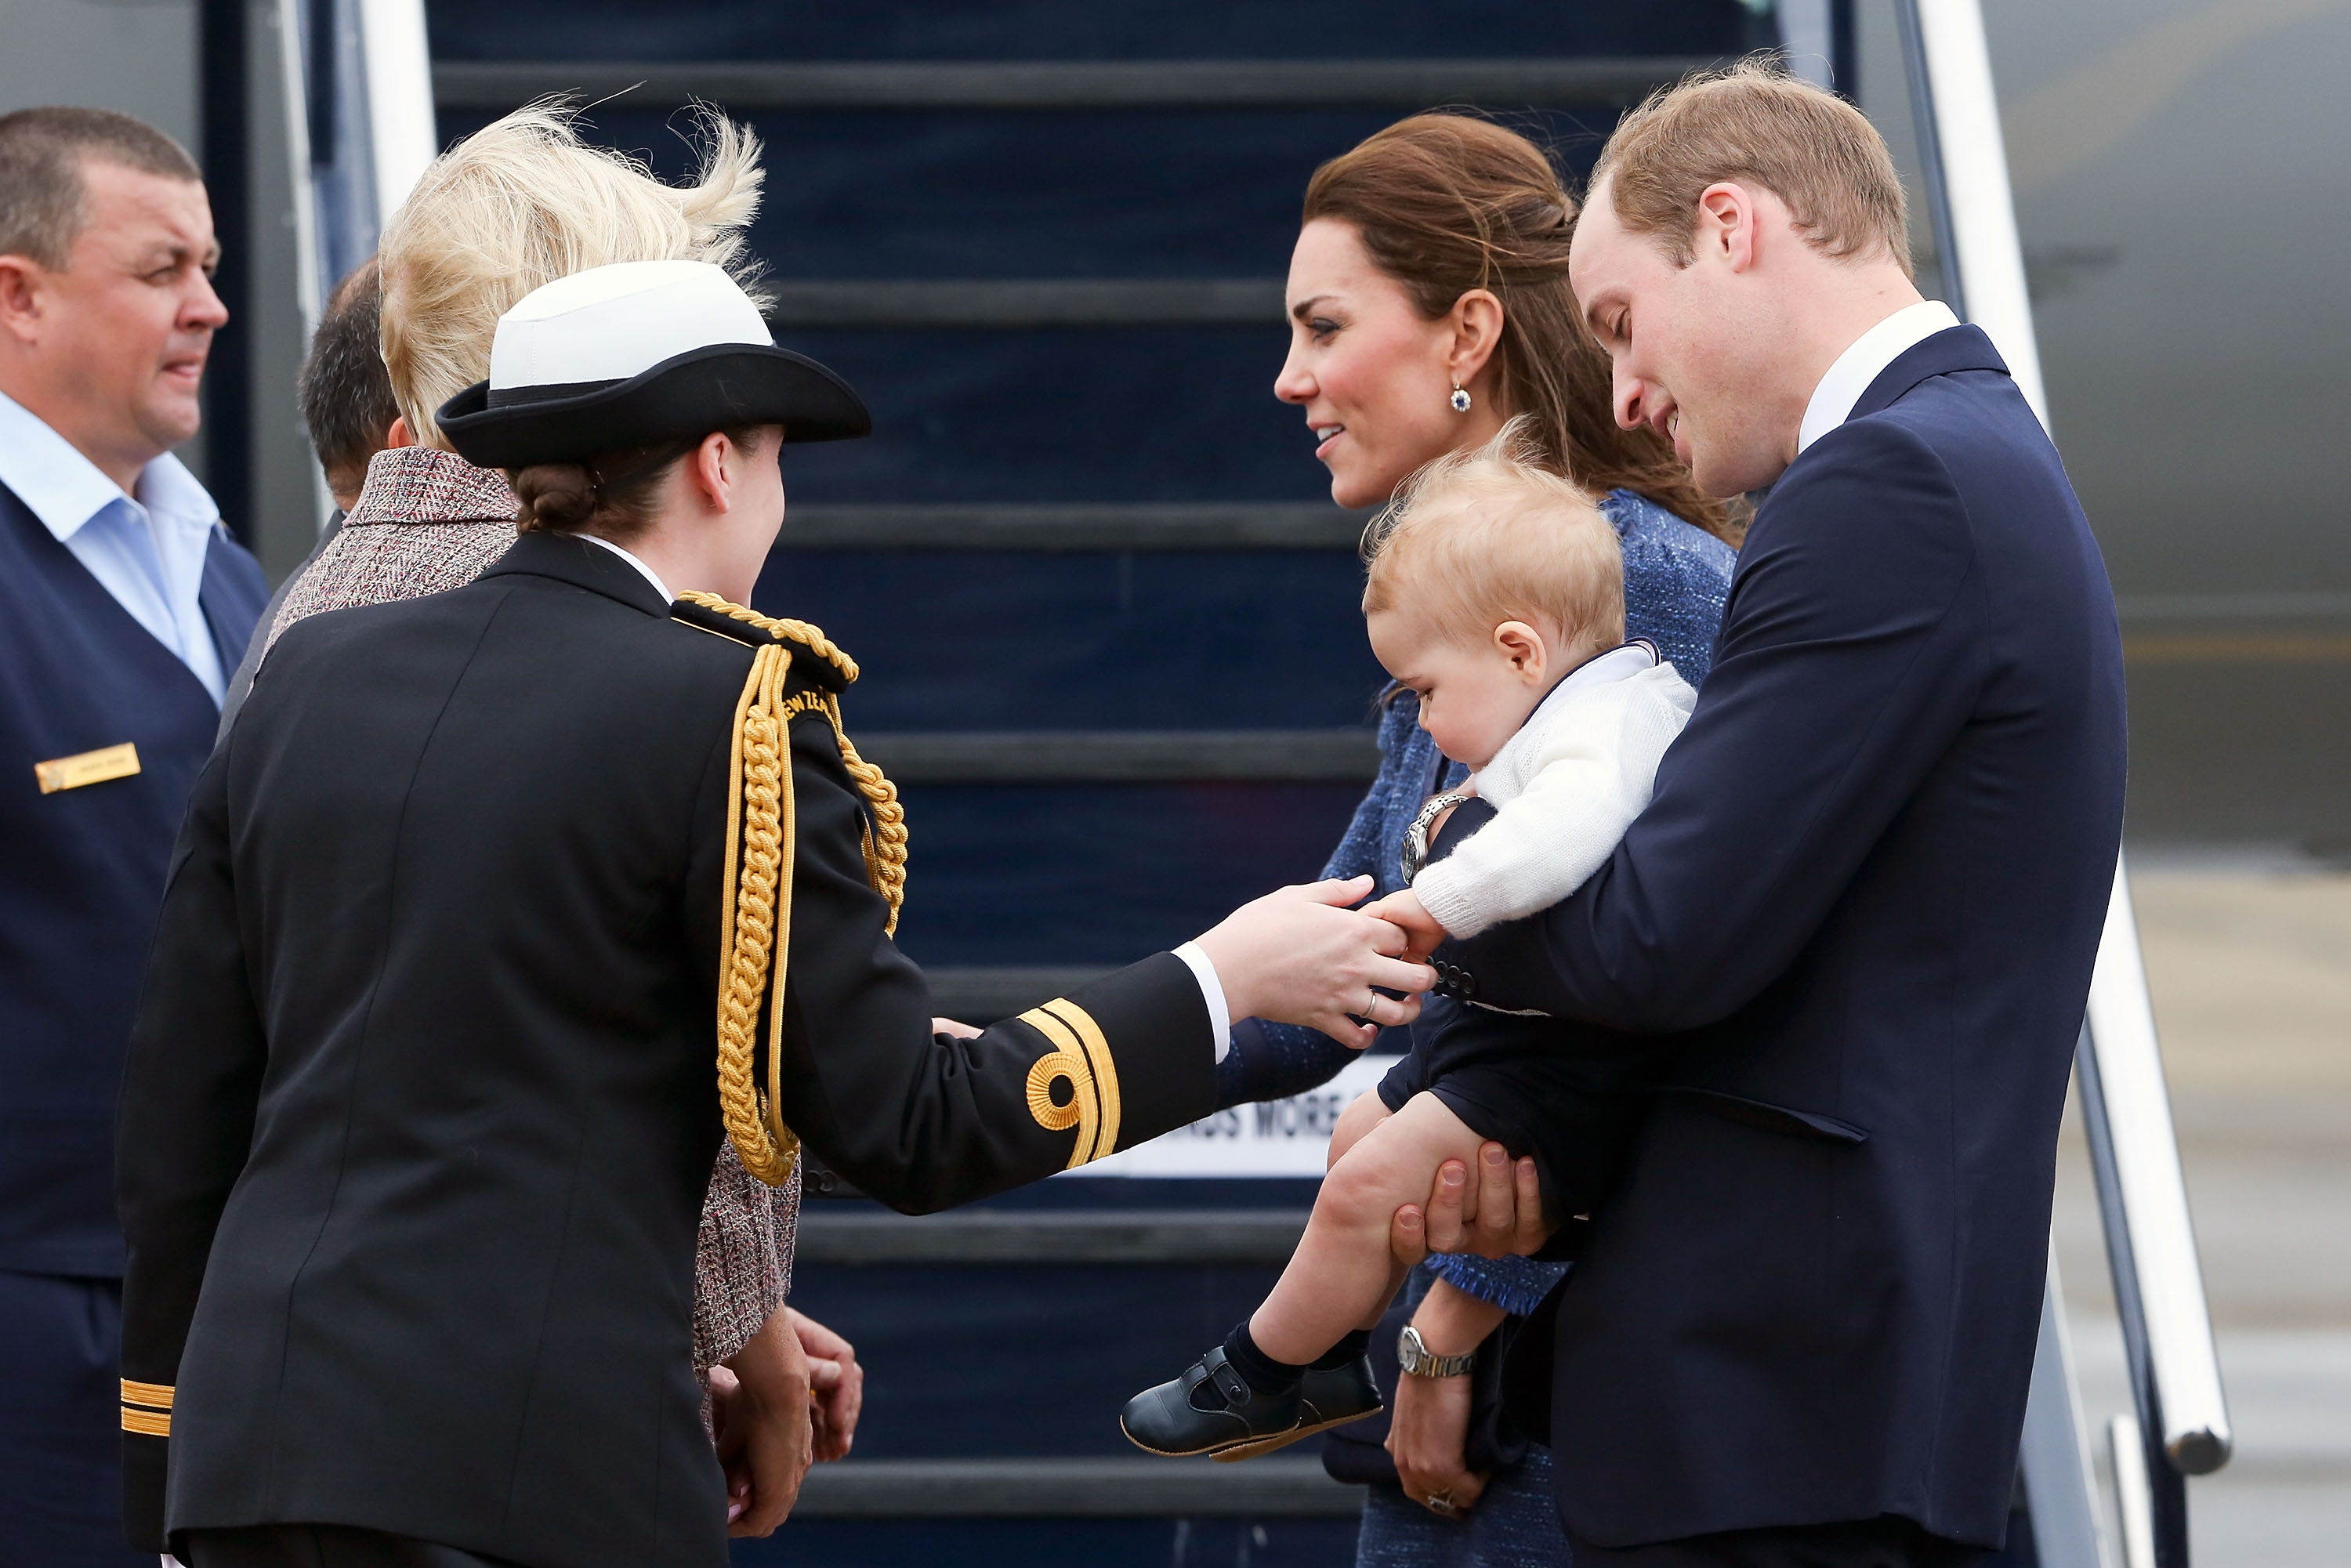 Kate, Wills, and George